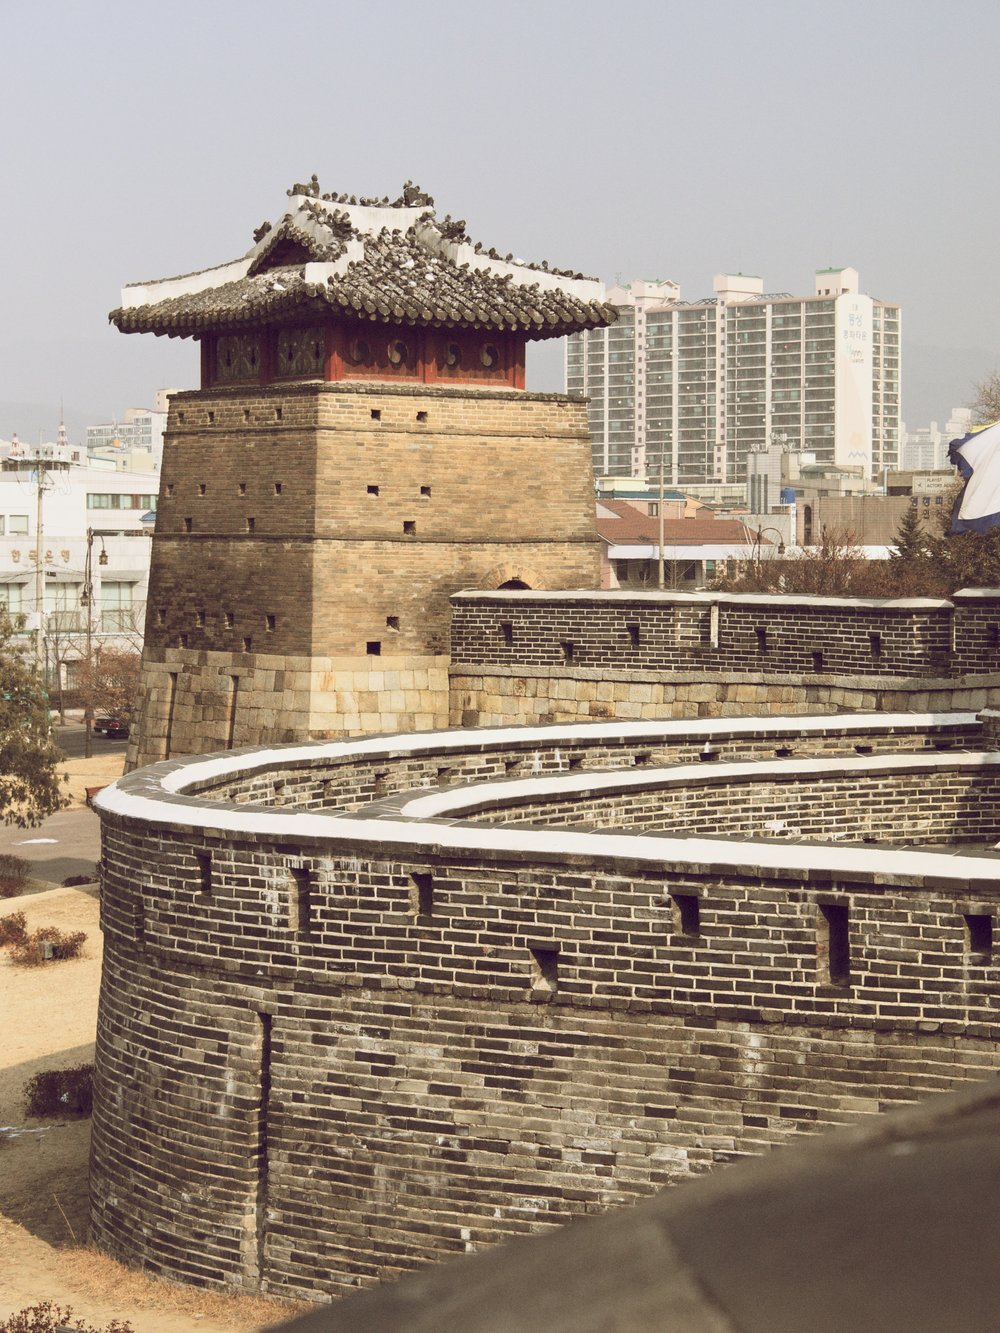 Wall and guard tower, January 2012.